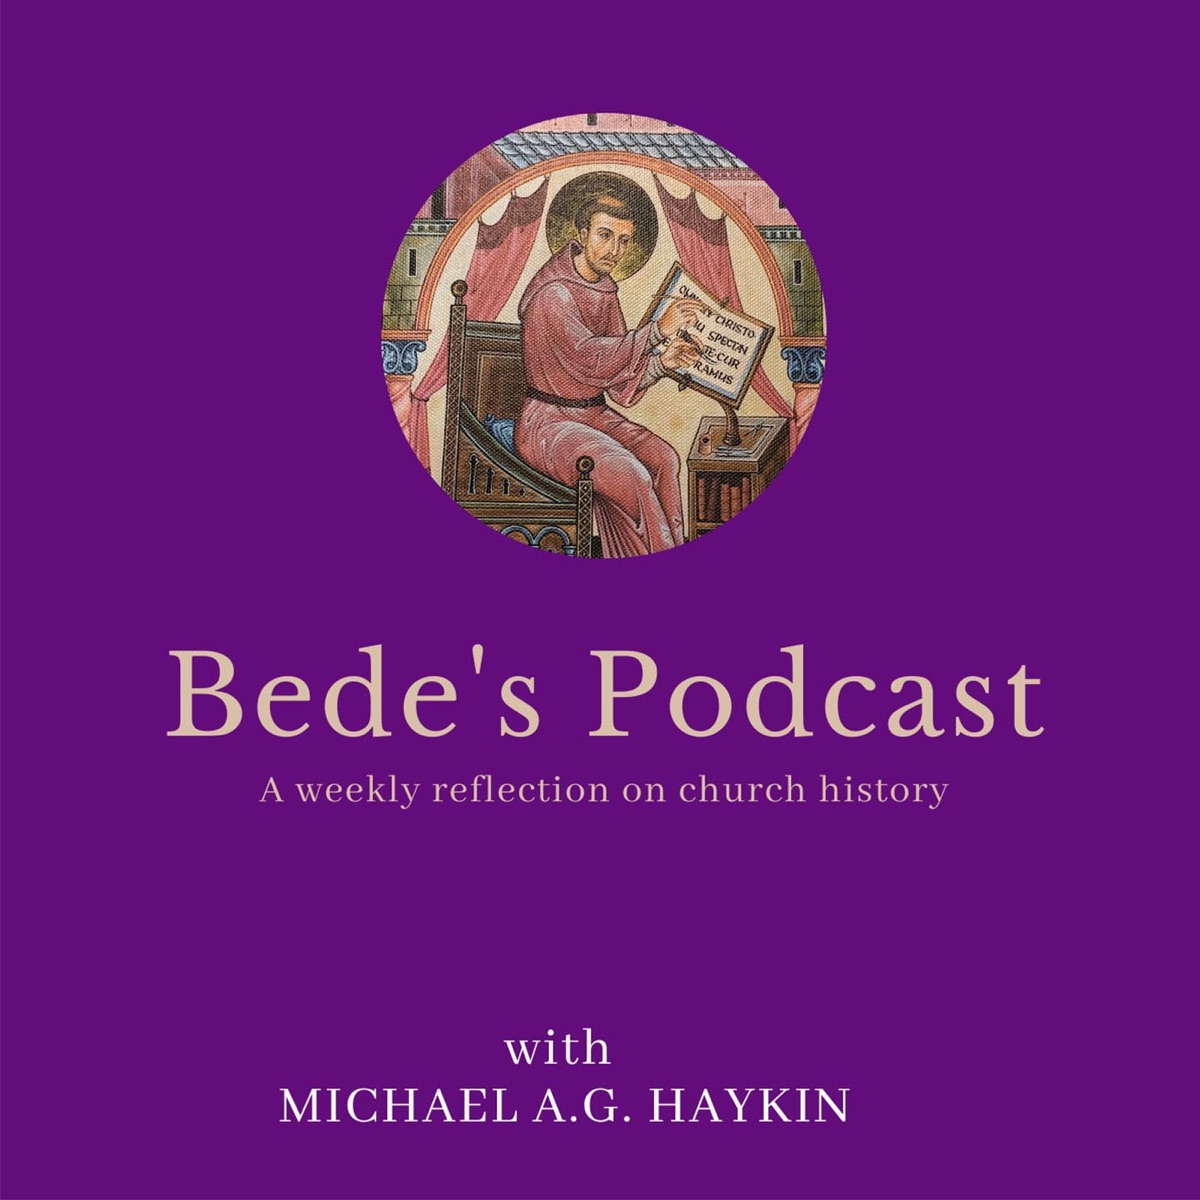 Bede's Podcast with Michael A.G. Haykin